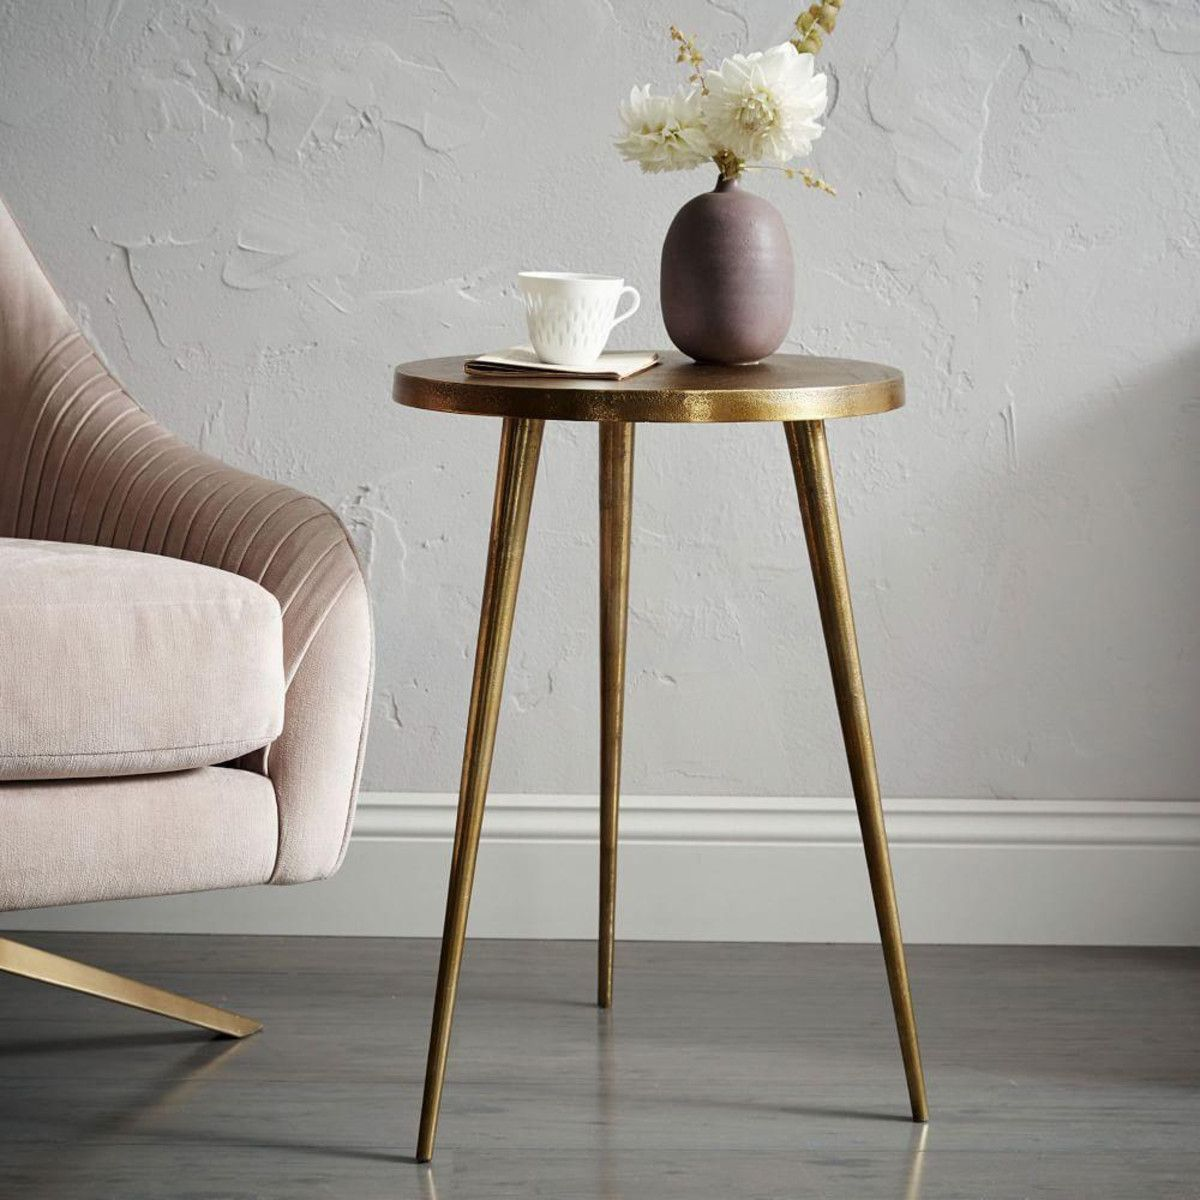 tripod side table living rooms and nook ideas accent west elm diy rustic coffee ikea white storage unit with small nesting tables fine furniture edmonton dale tiffany hummingbird